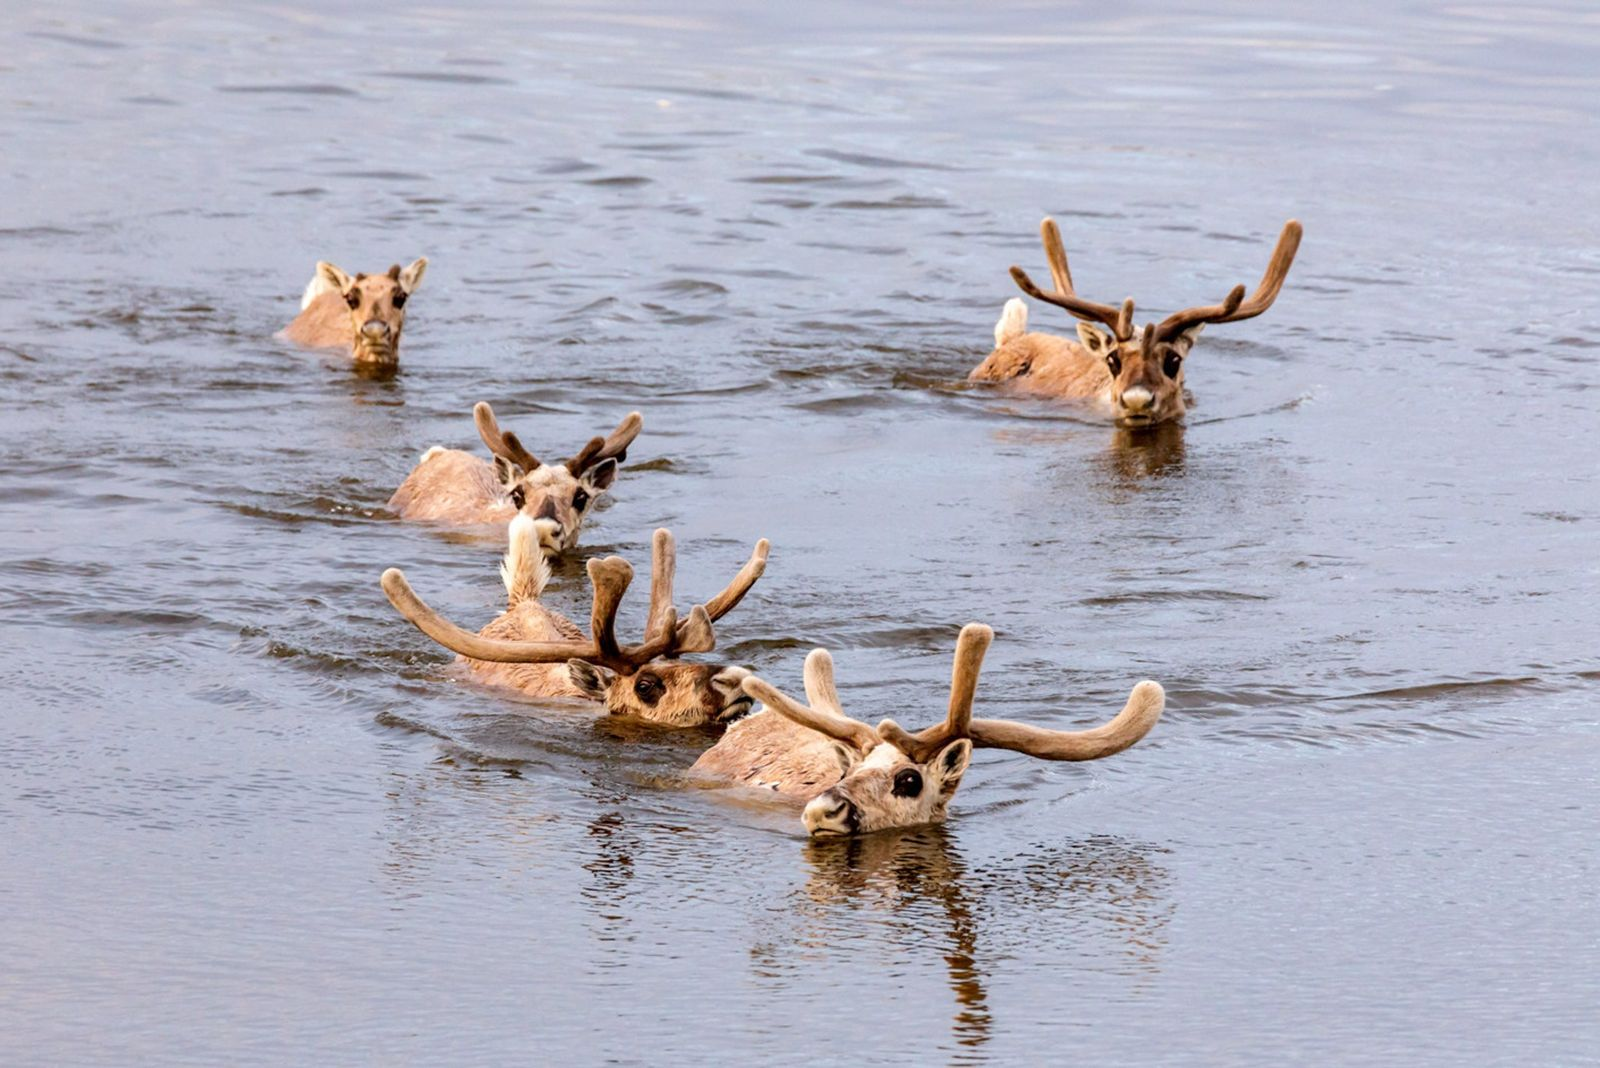 World's largest reindeer herd targeted by poachers for antler velvet